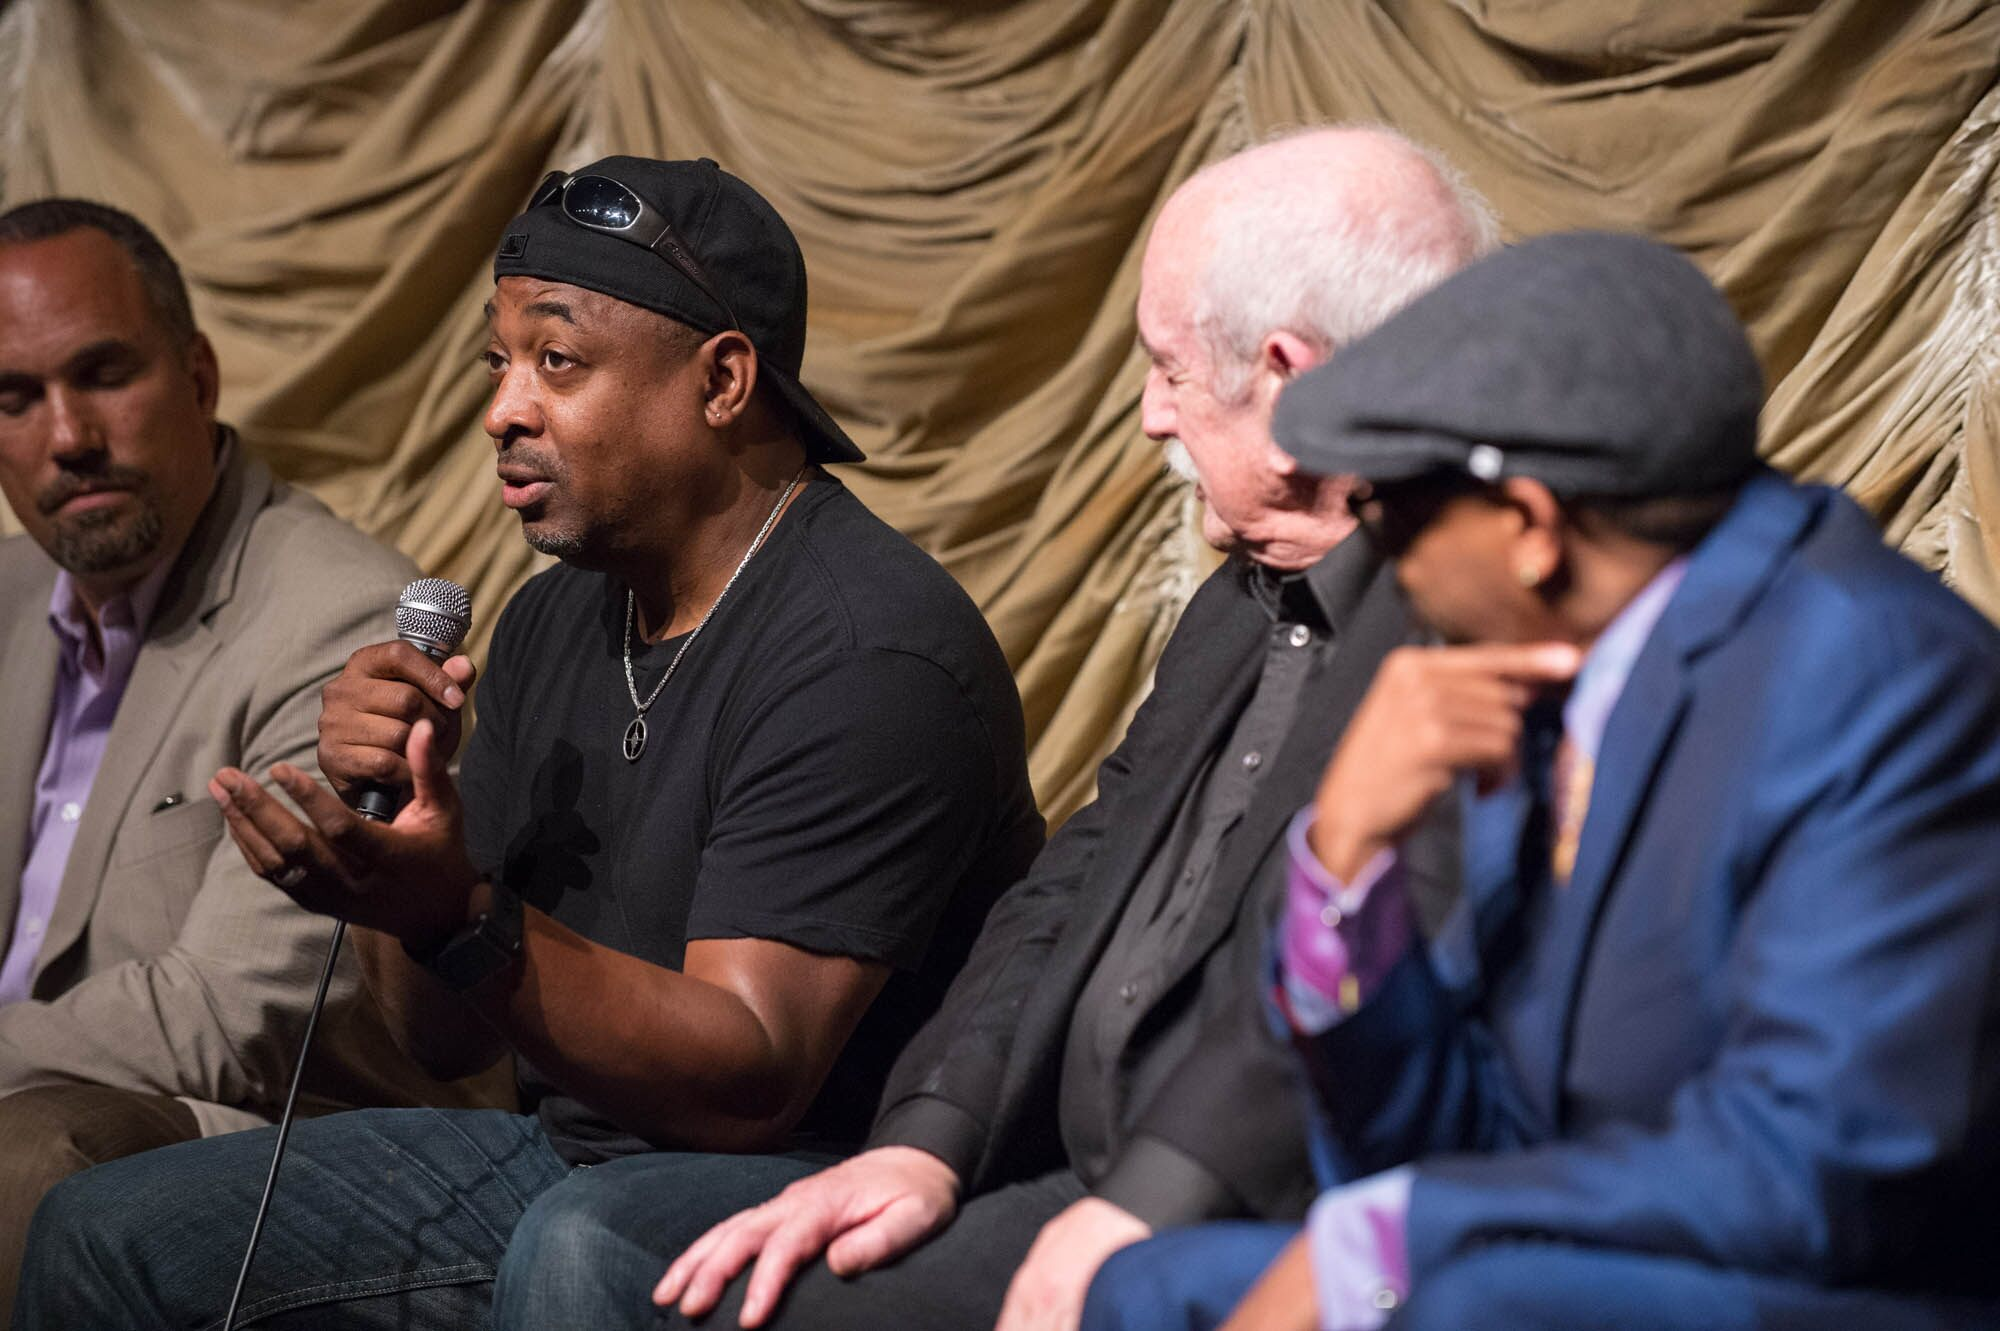 Roger Guenveur Smith, Chuck D, Tom Pollock and Spike Lee.